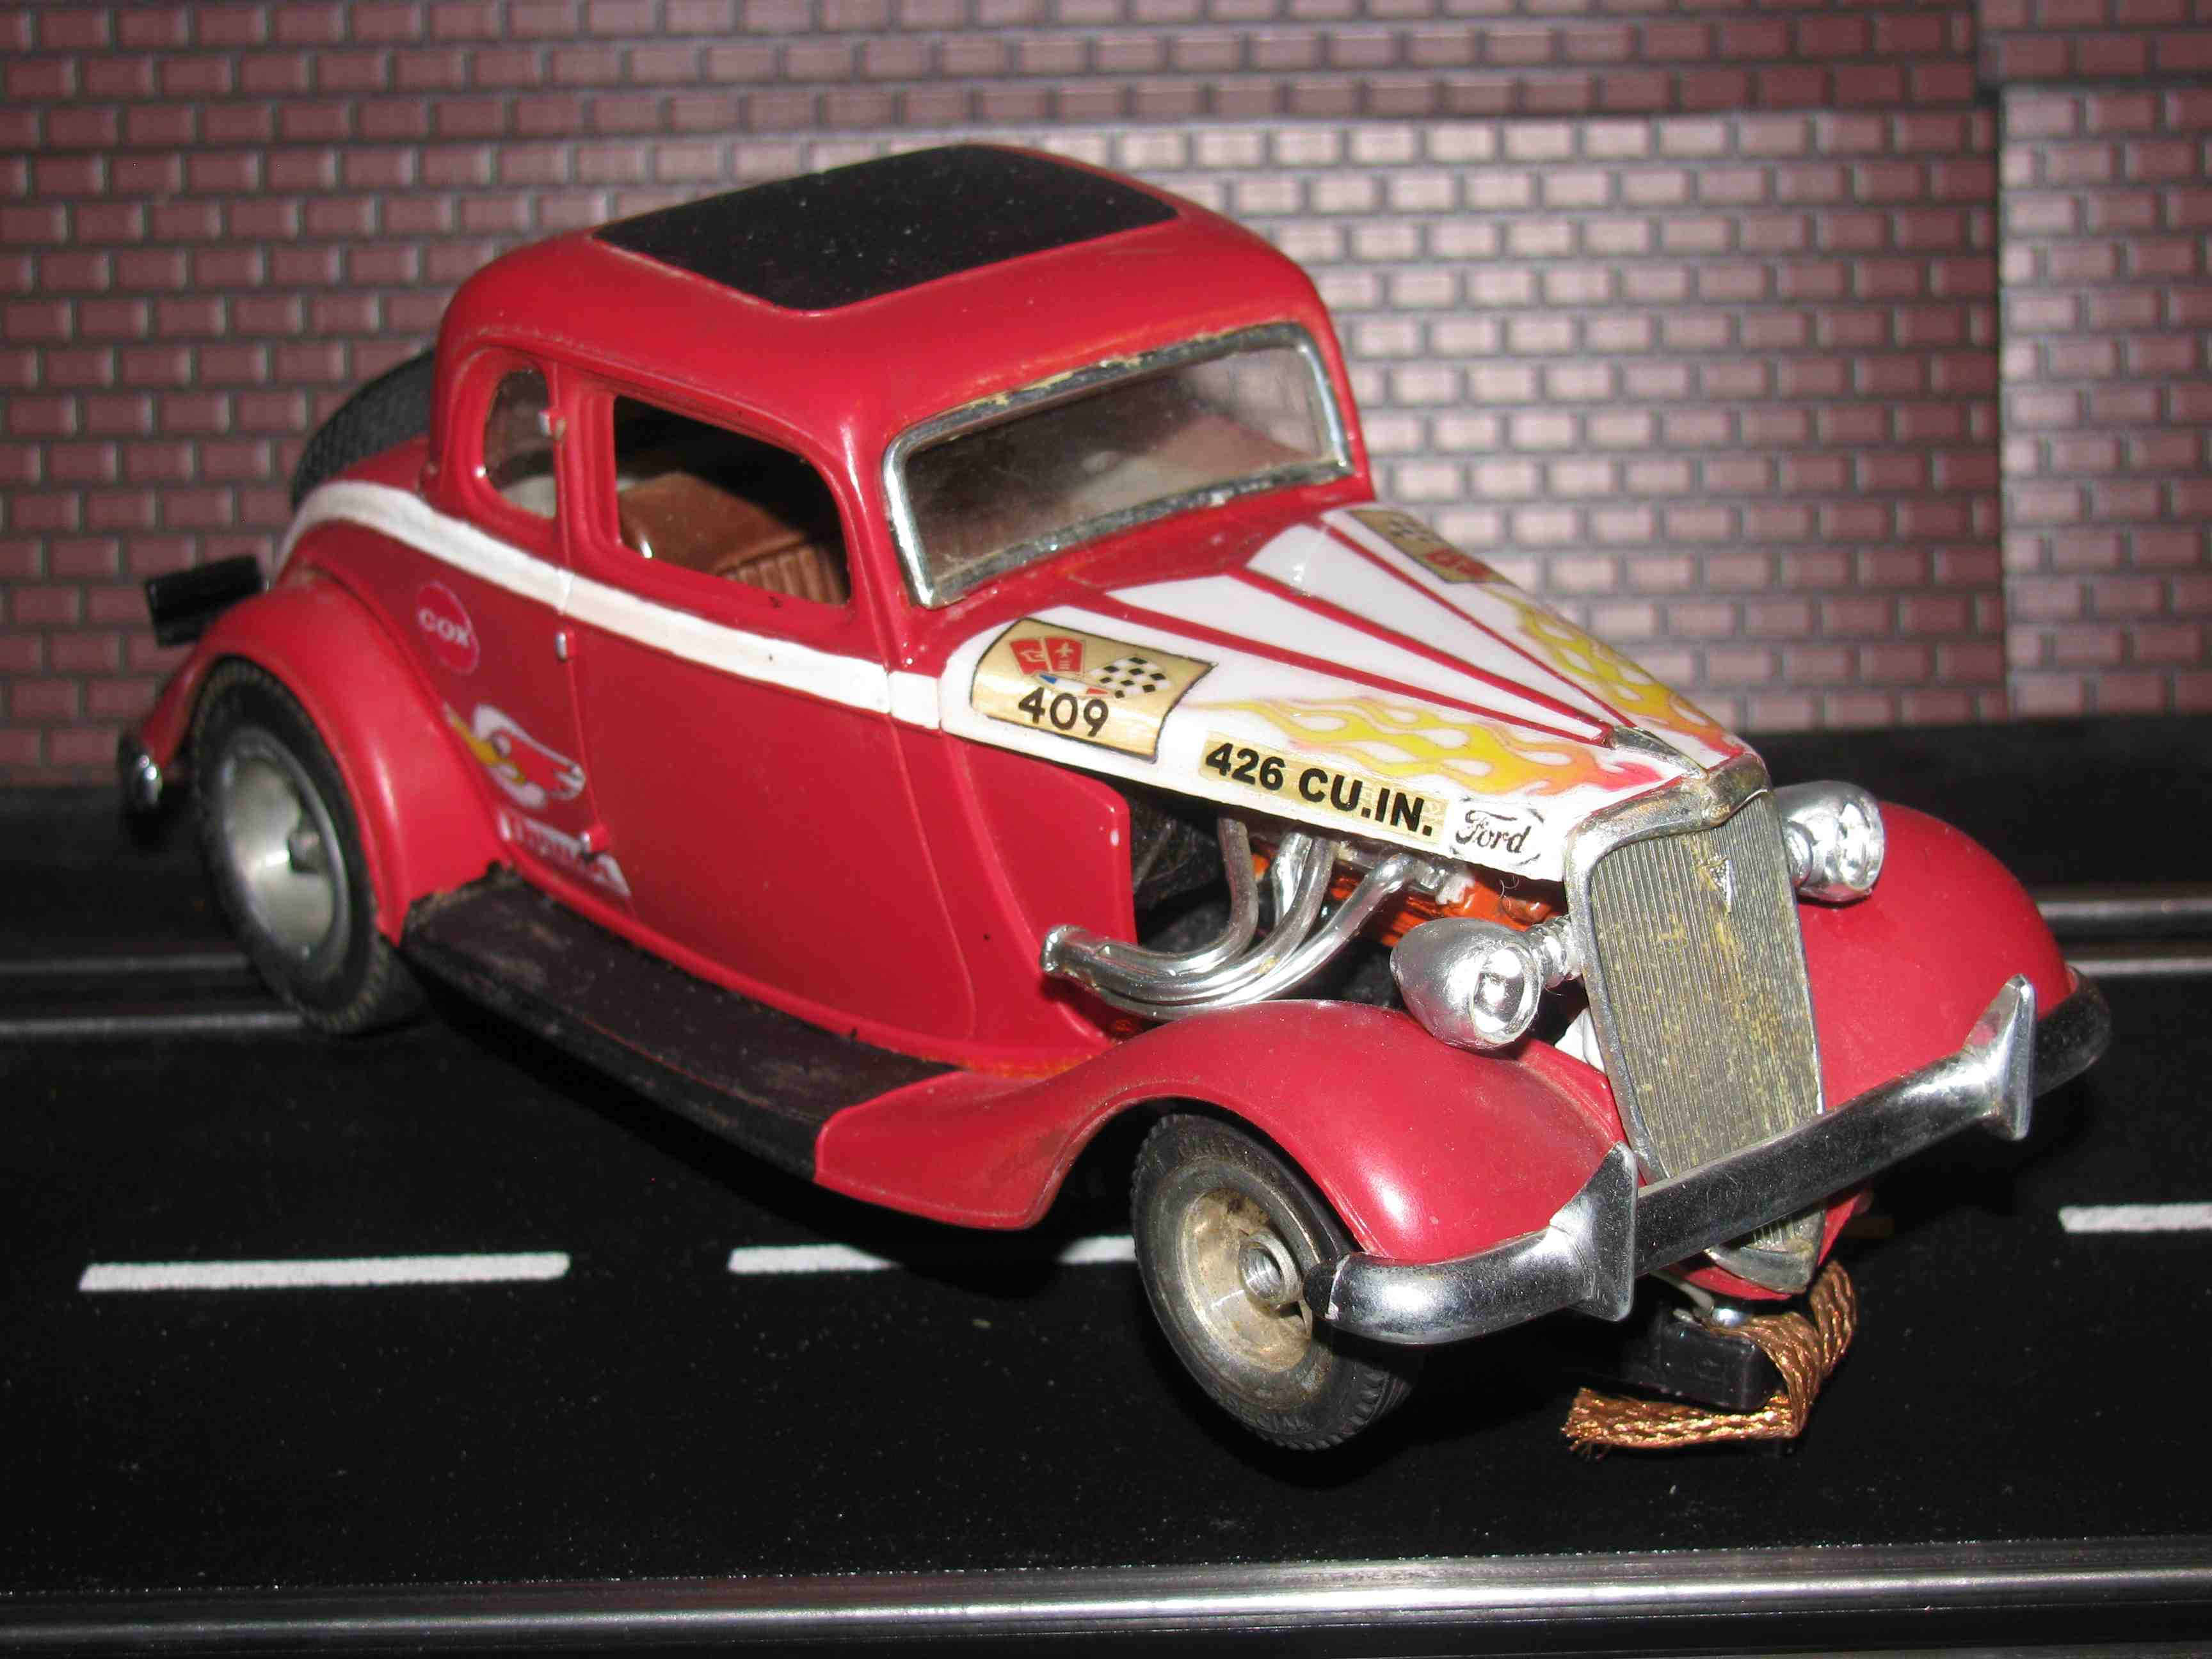 * SOLD * 1932 Ford V8 Coupe Hot Rod Slot Car 1/24 Scale - Red